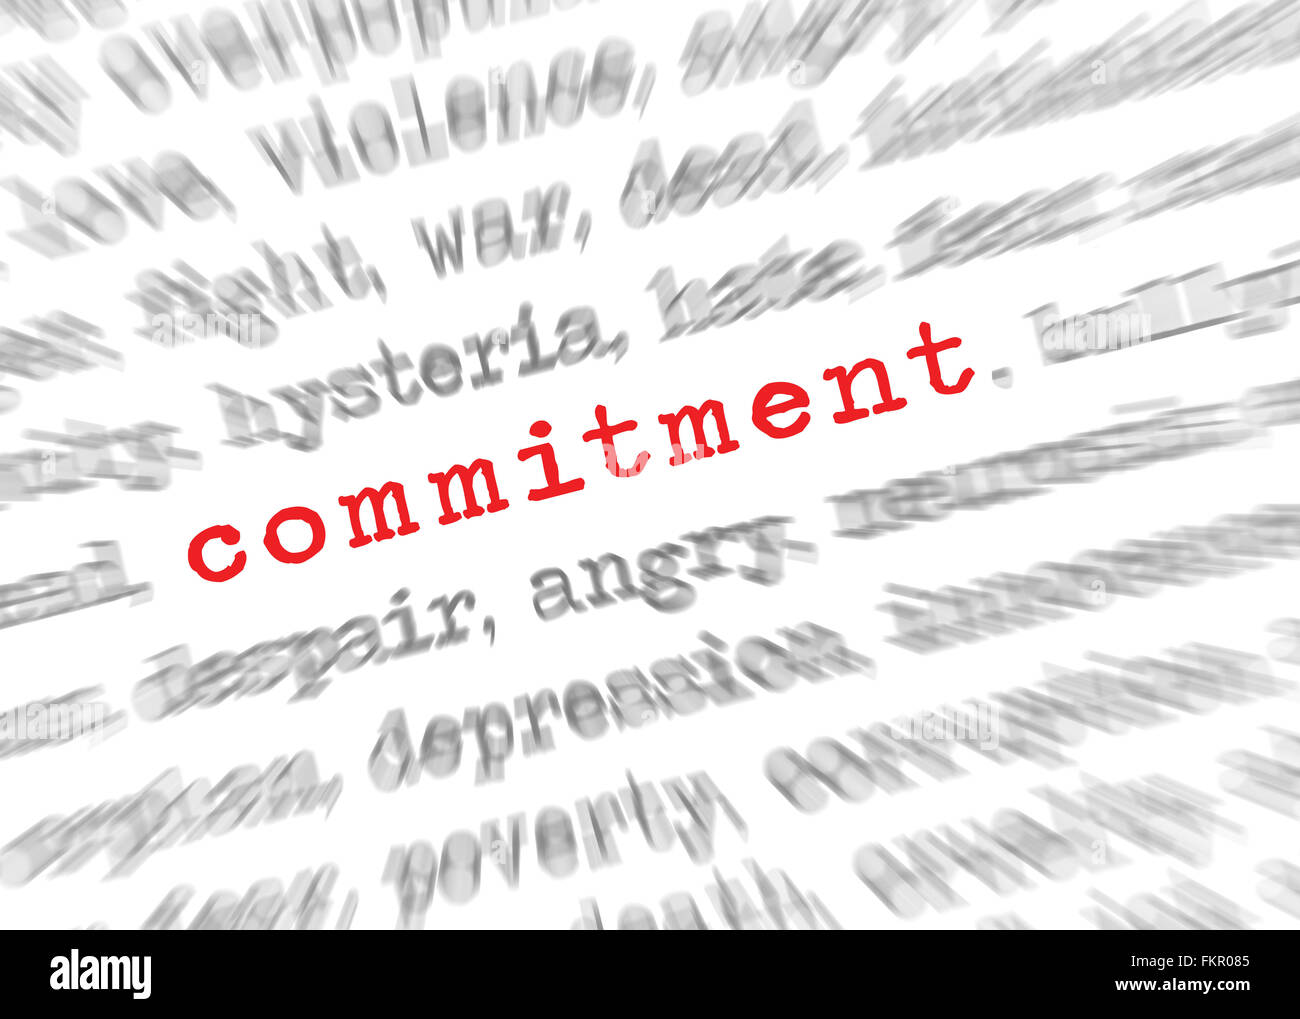 Blured text zoom effect with focus on commitment - Stock Image